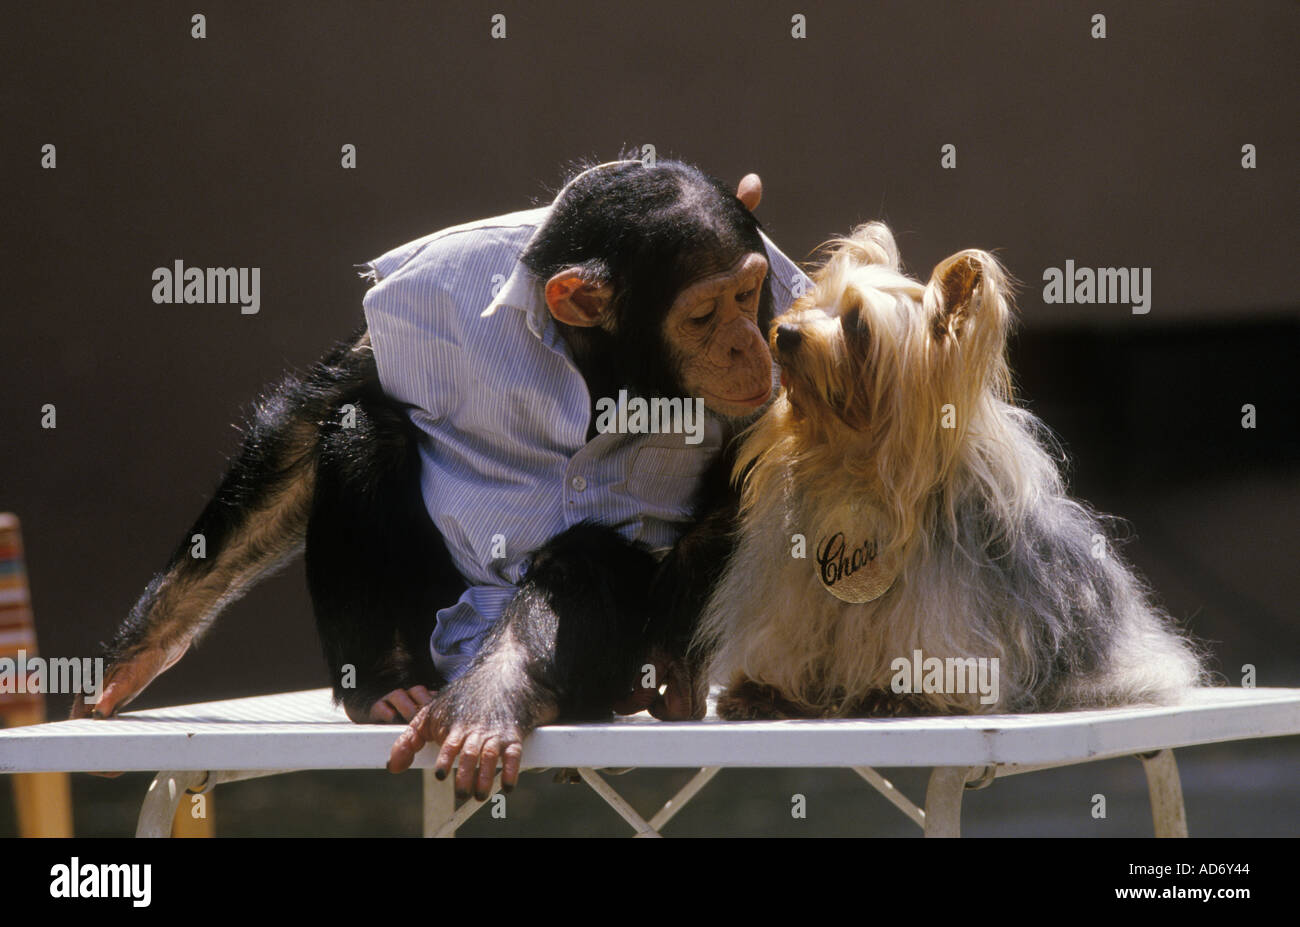 Brook Bond Tea advert Rome. Italy. Chimps Sally plus dog  1988  HOMER SYKES - Stock Image